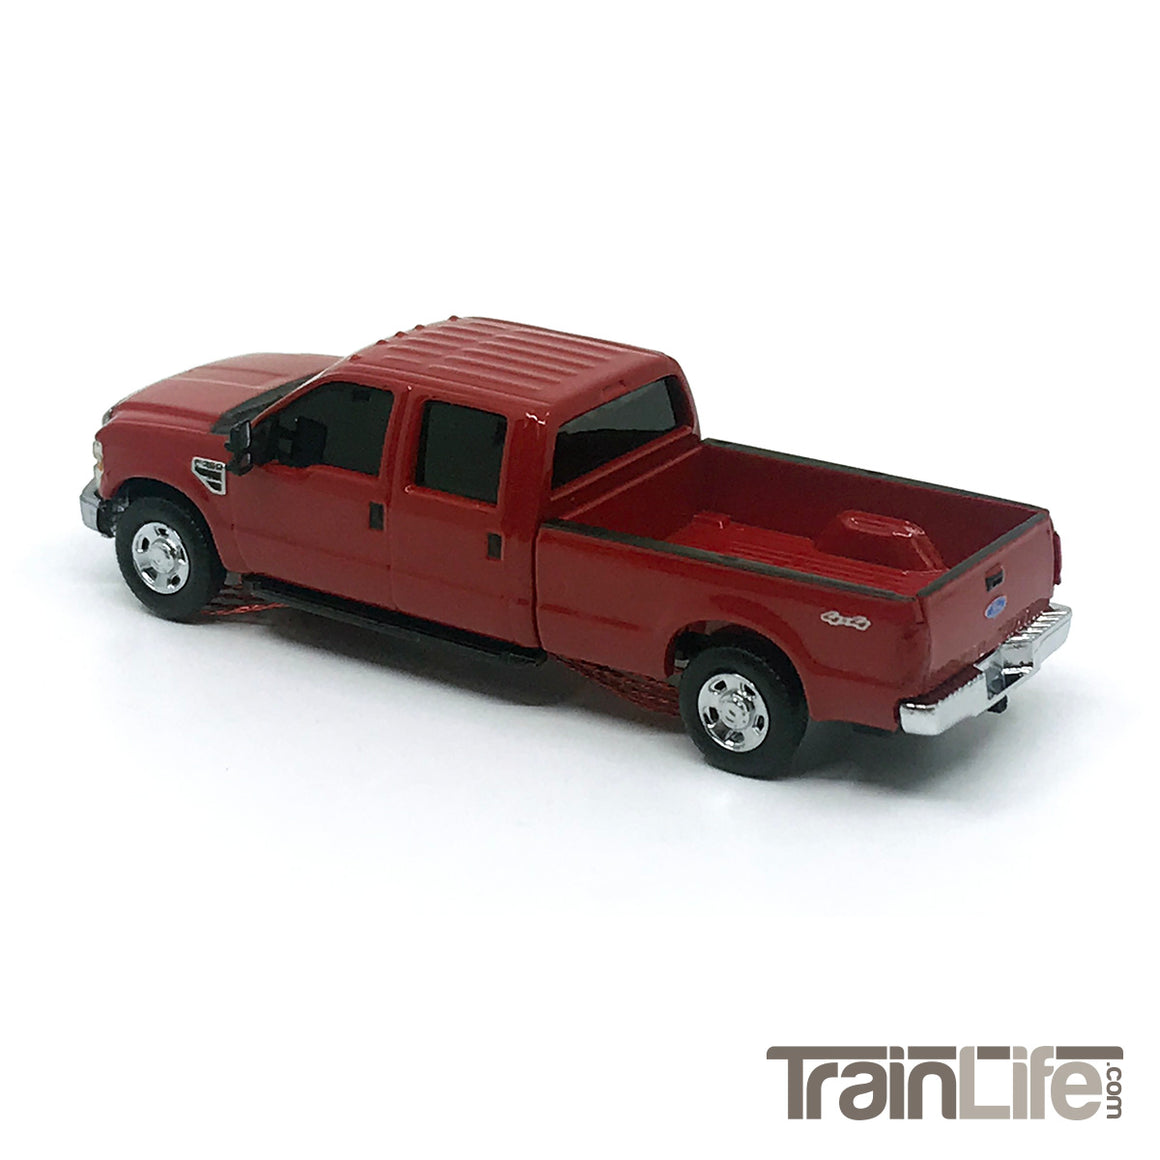 HO Scale: Lighted Ford F350 Crew Cab Truck - Red